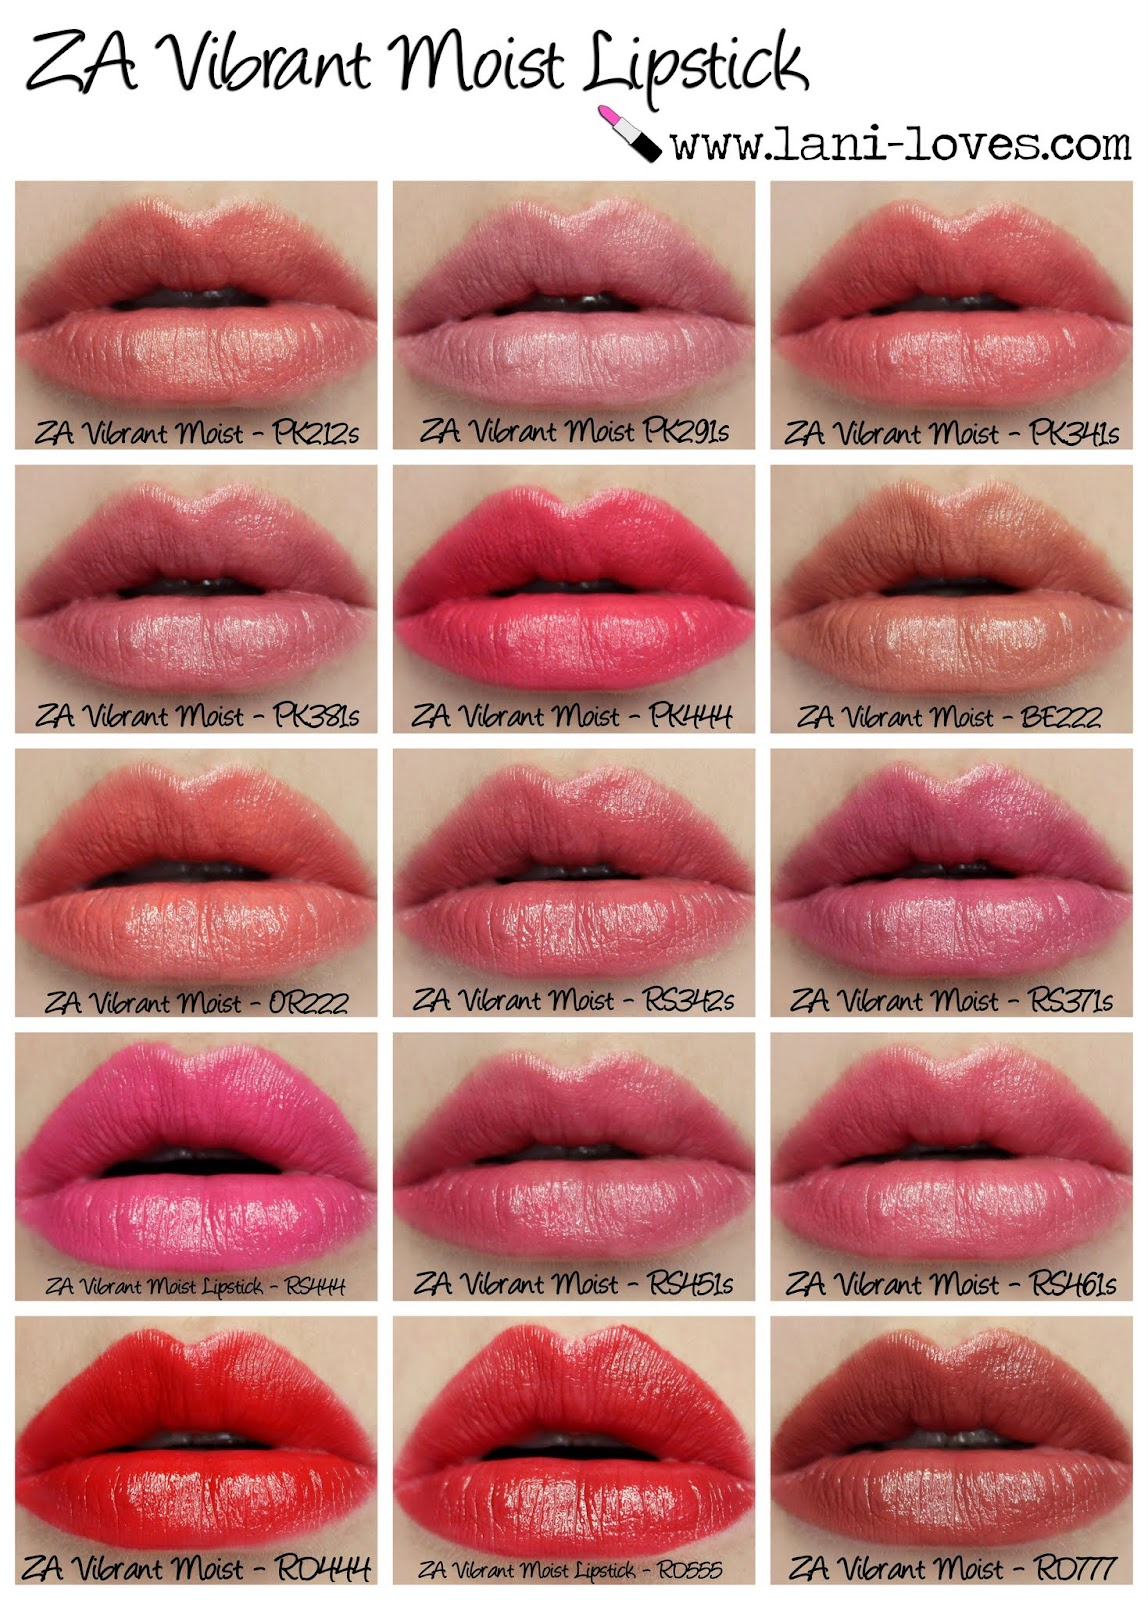 ZA Vibrant Moist Lipstick - Complete Collection Swatches & Review